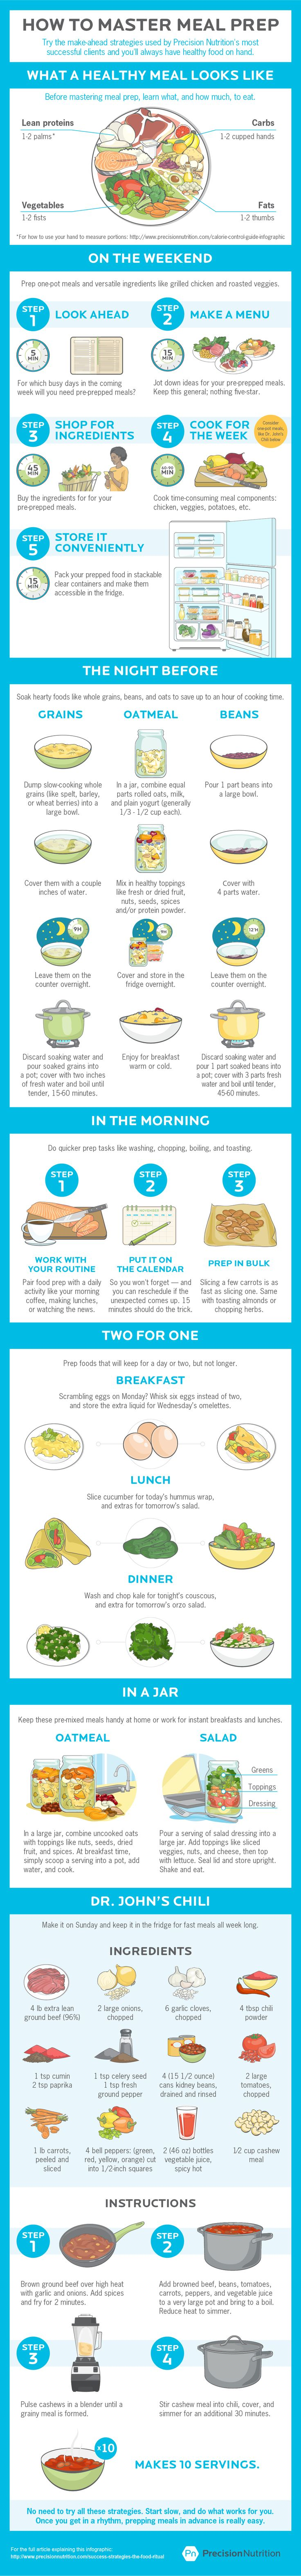 Check out these weekly meal prep strategies, used by Precision Nutrition's most successful clients. And learn how they can help you save time on preparing healthy food too.